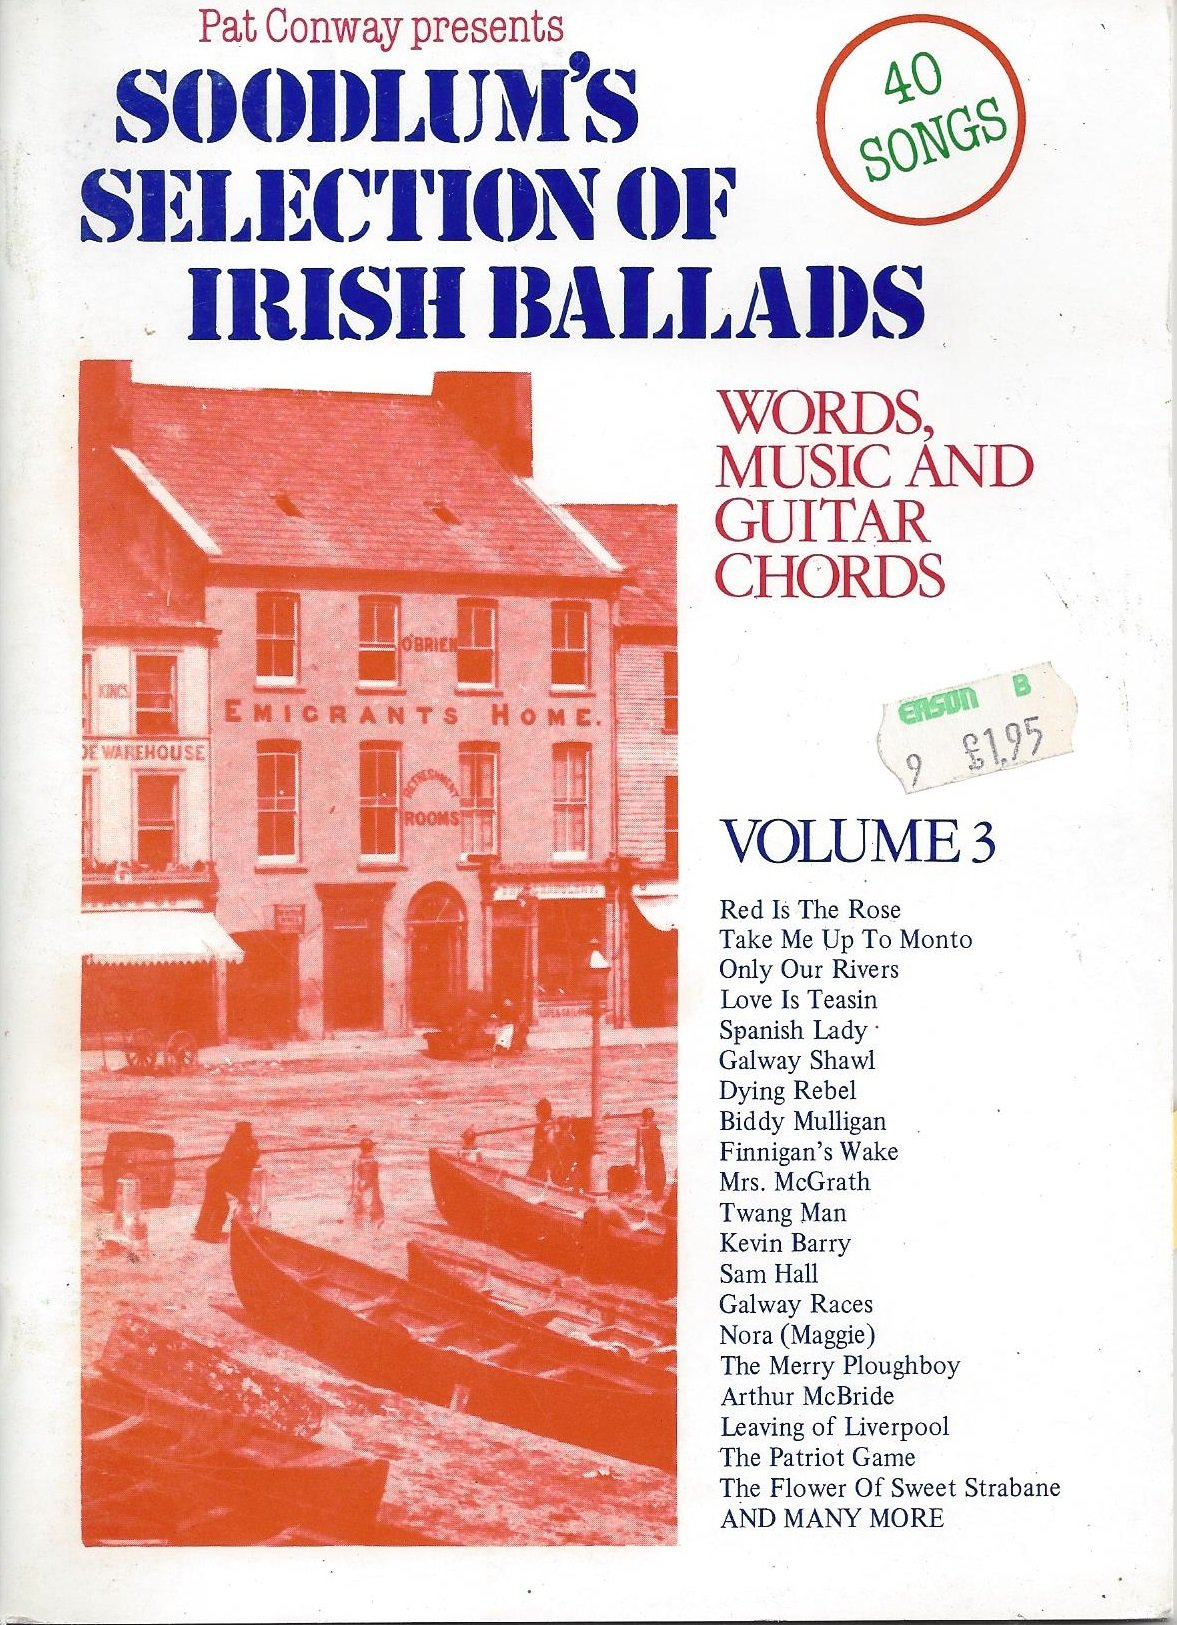 Soodlums Selection Of Irish Ballads With Guitar Chords Vol3 Pat